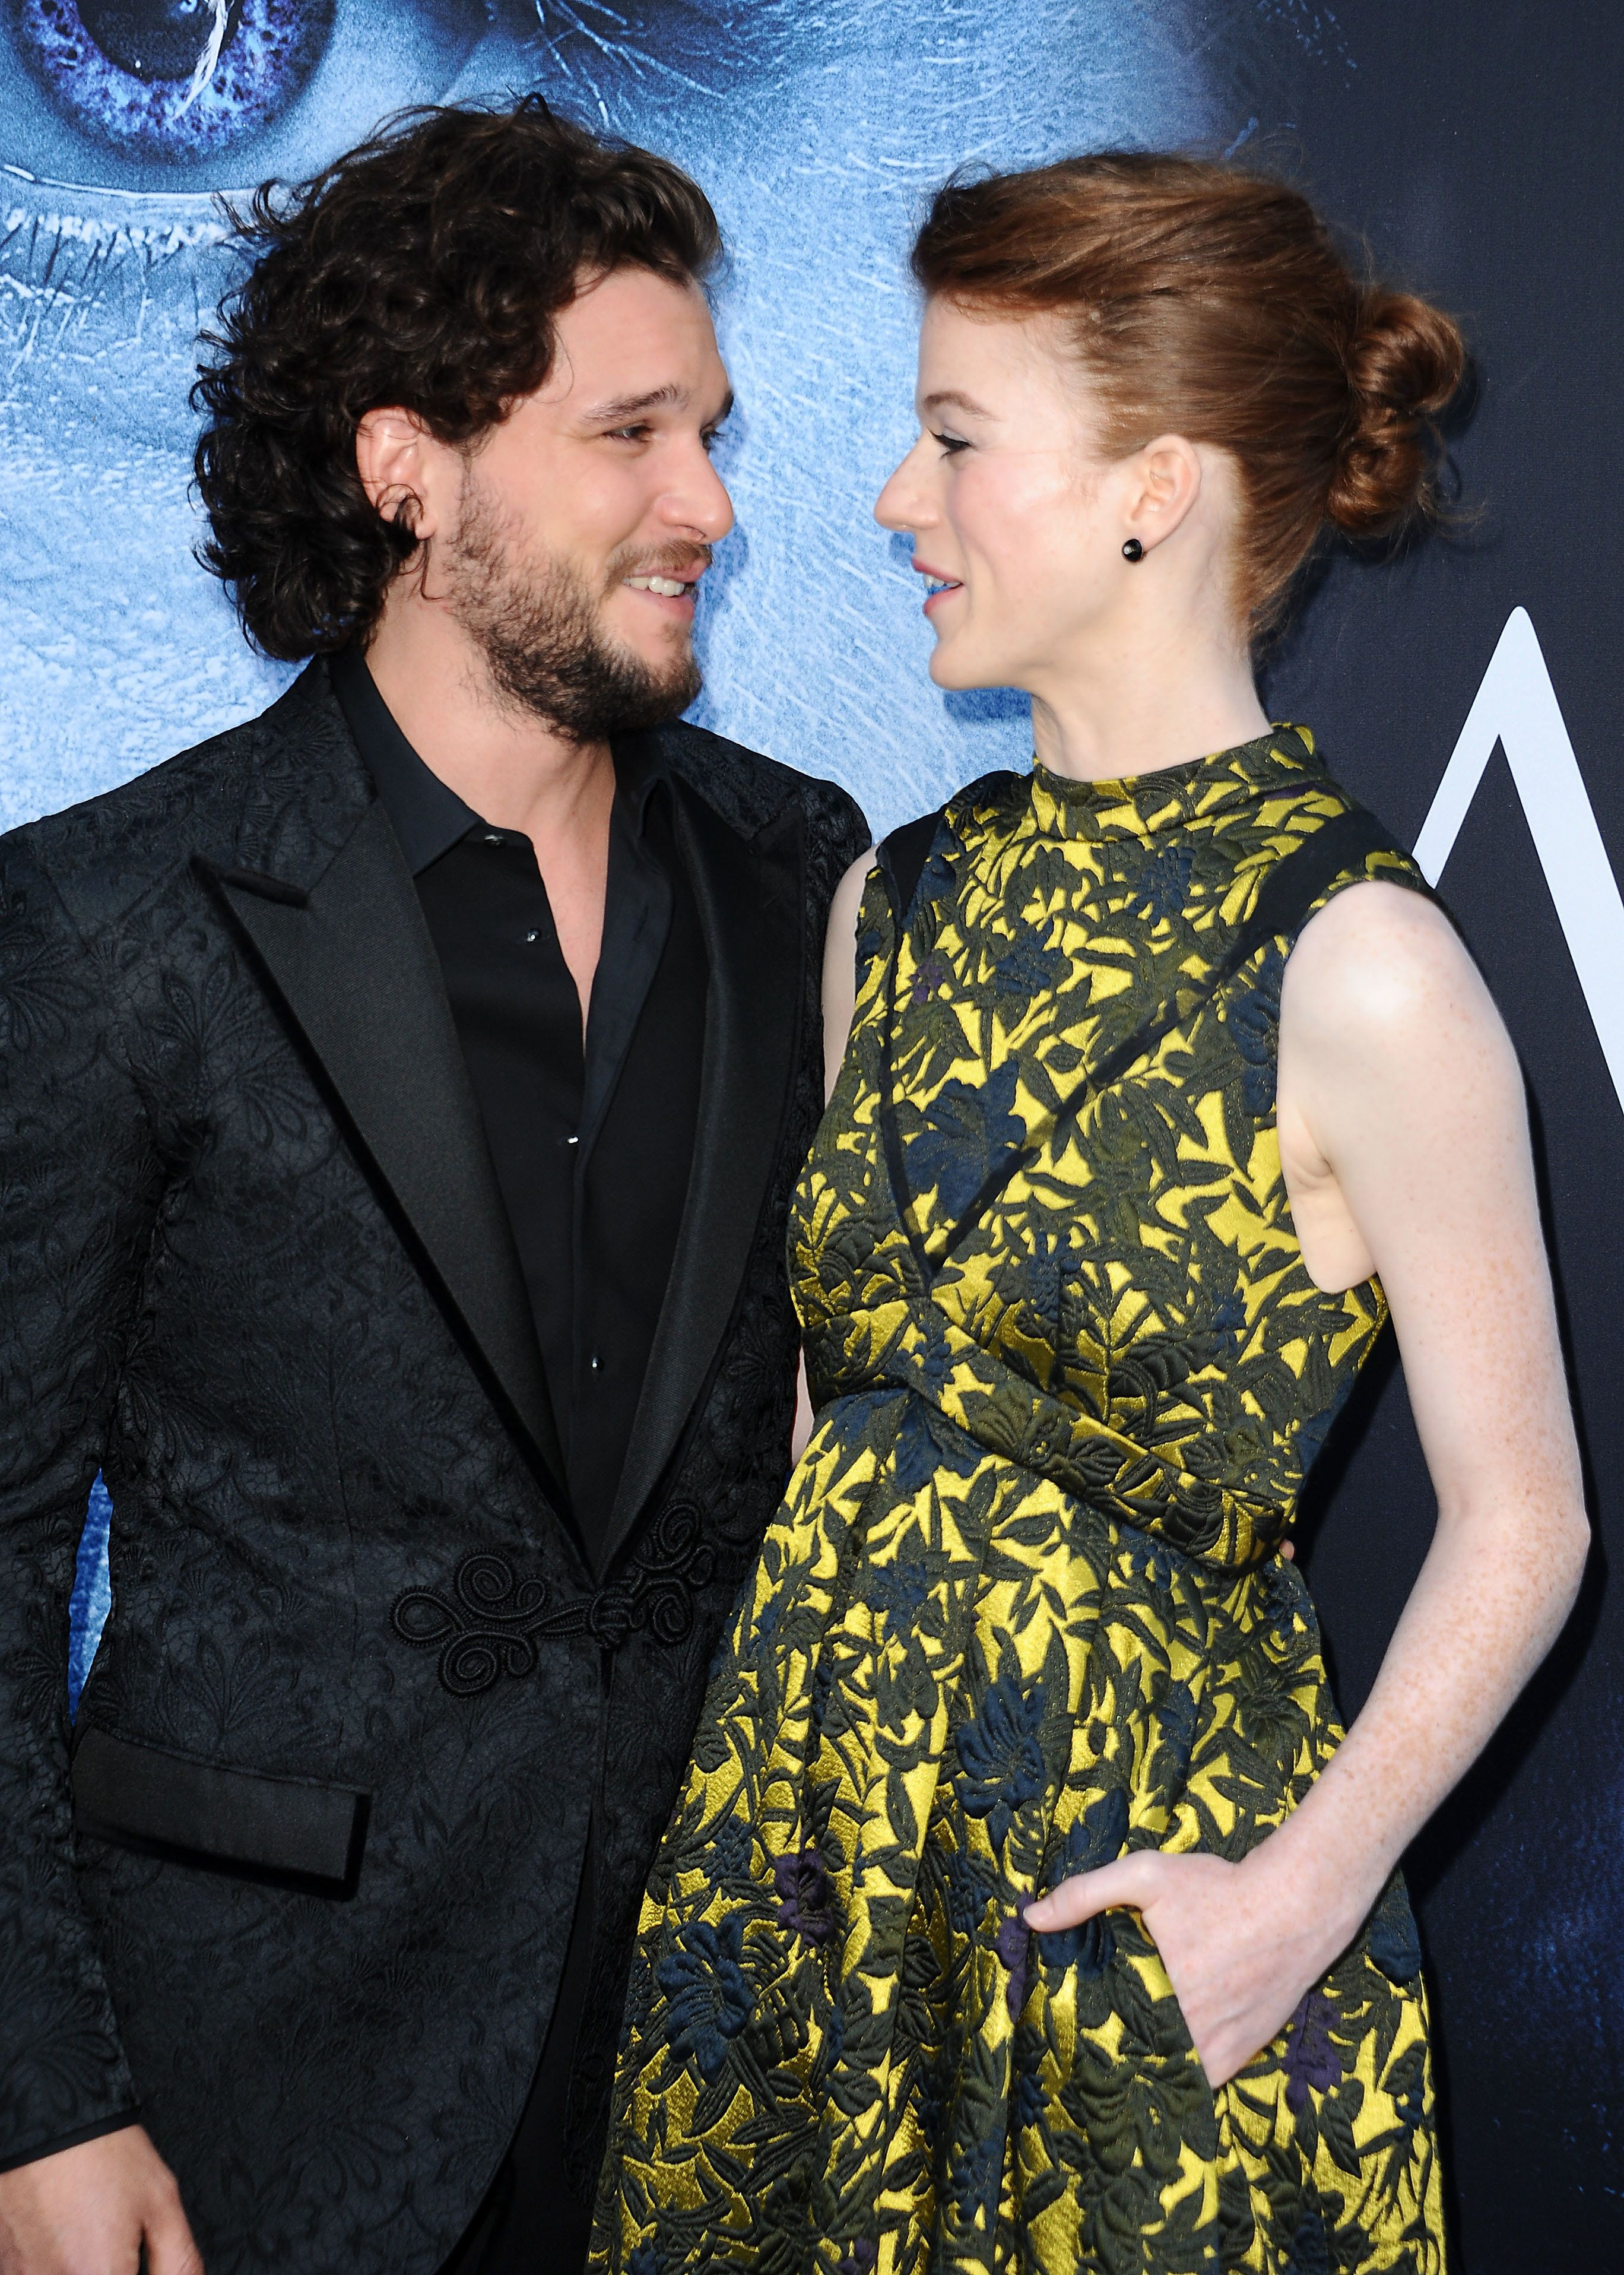 Kit Harington And Rose Leslie Go Public With Engagement, In Very Traditional